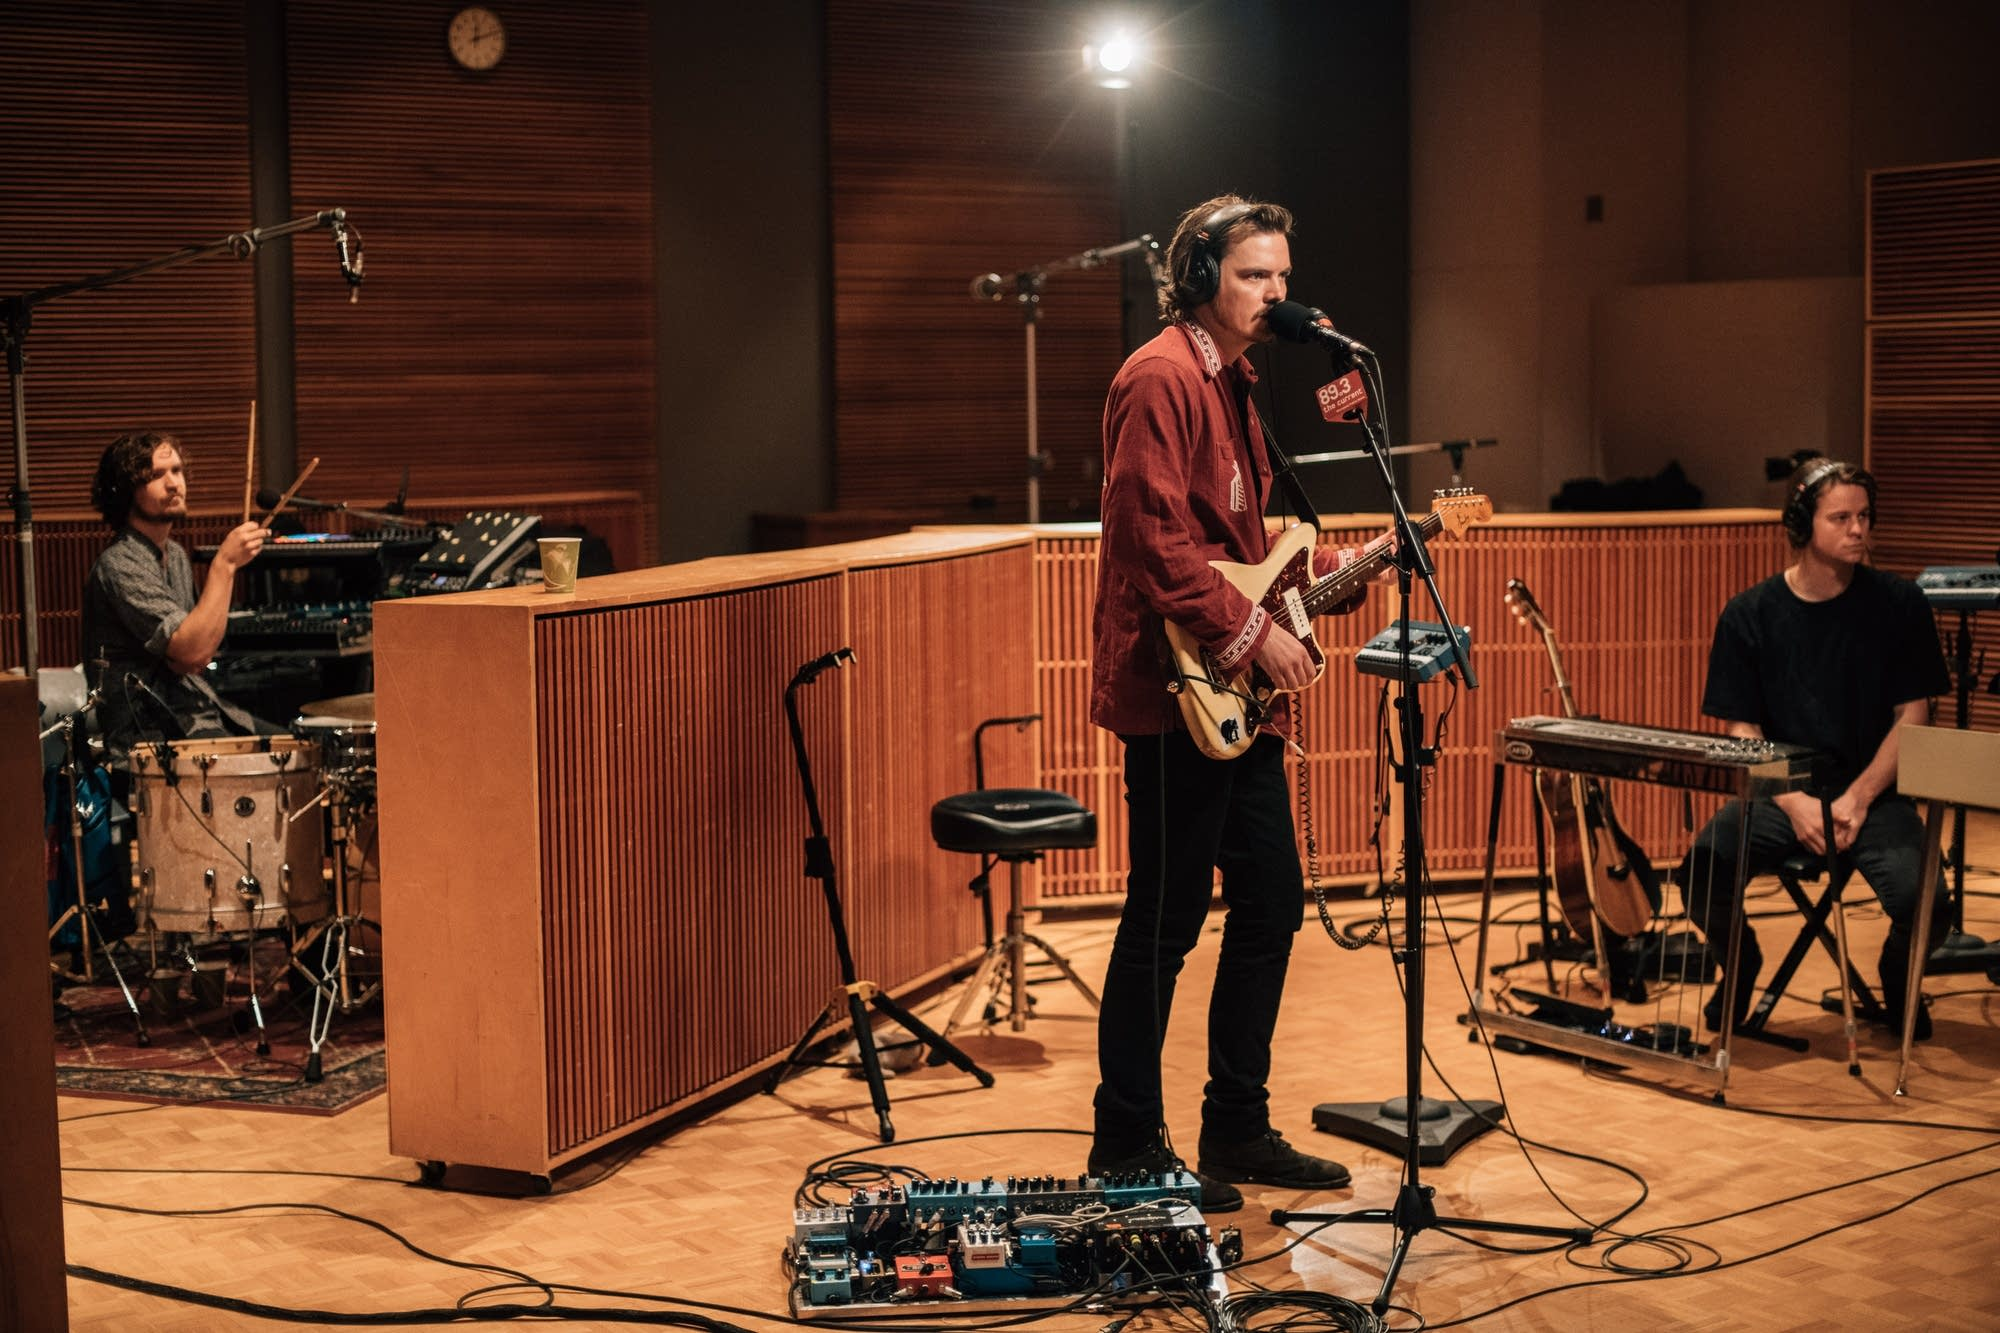 Half Moon Run perform in The Current studio